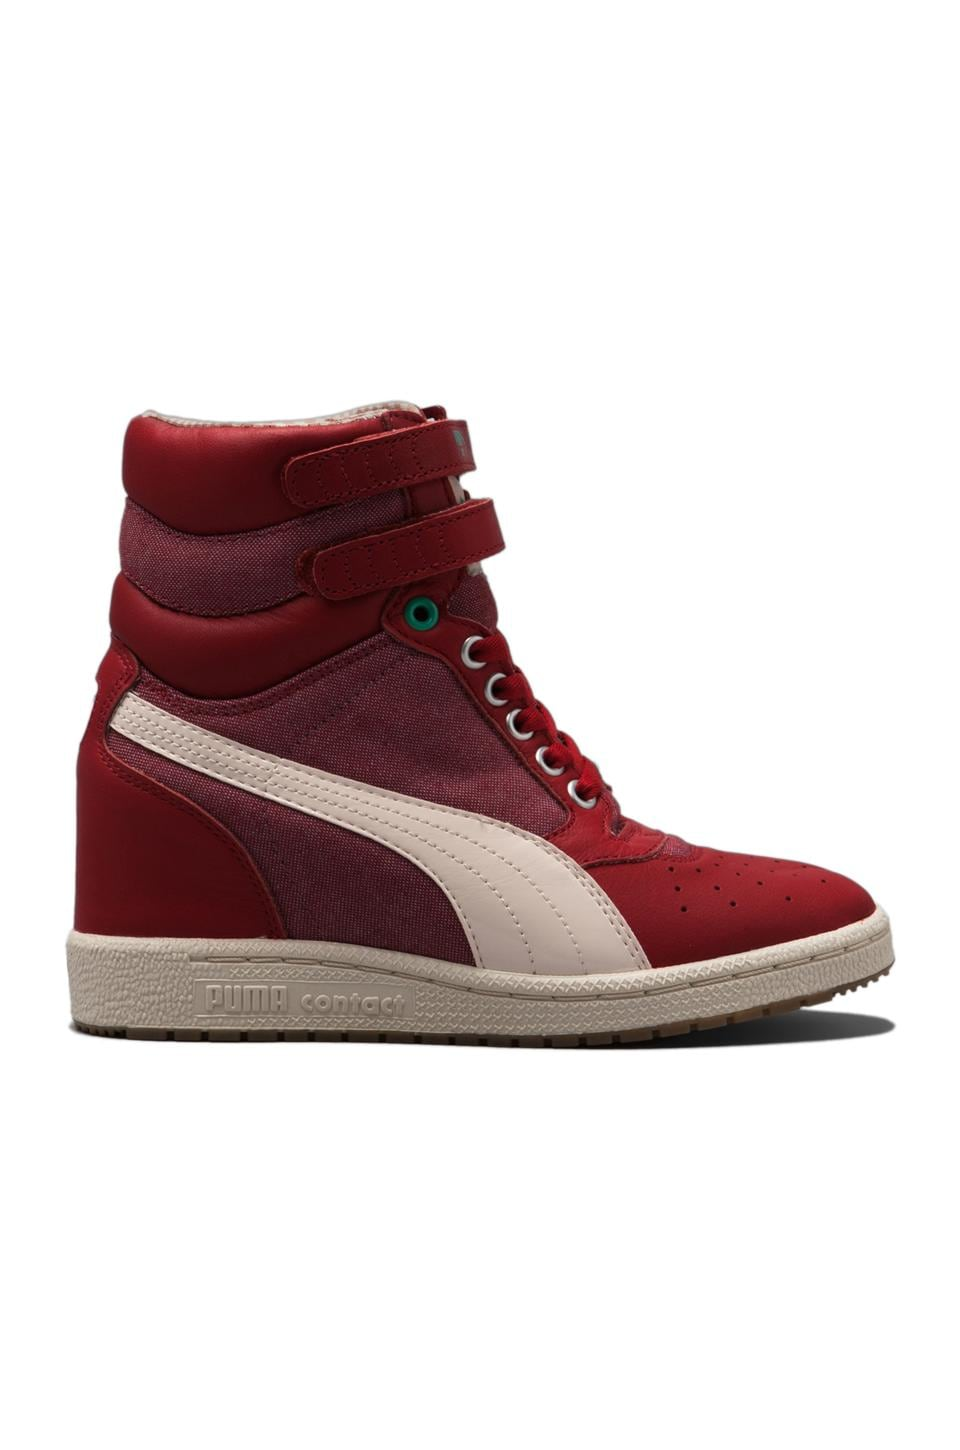 Puma by Mihara My-66 LC Sneaker in Pompeian Red/Mint Leaf